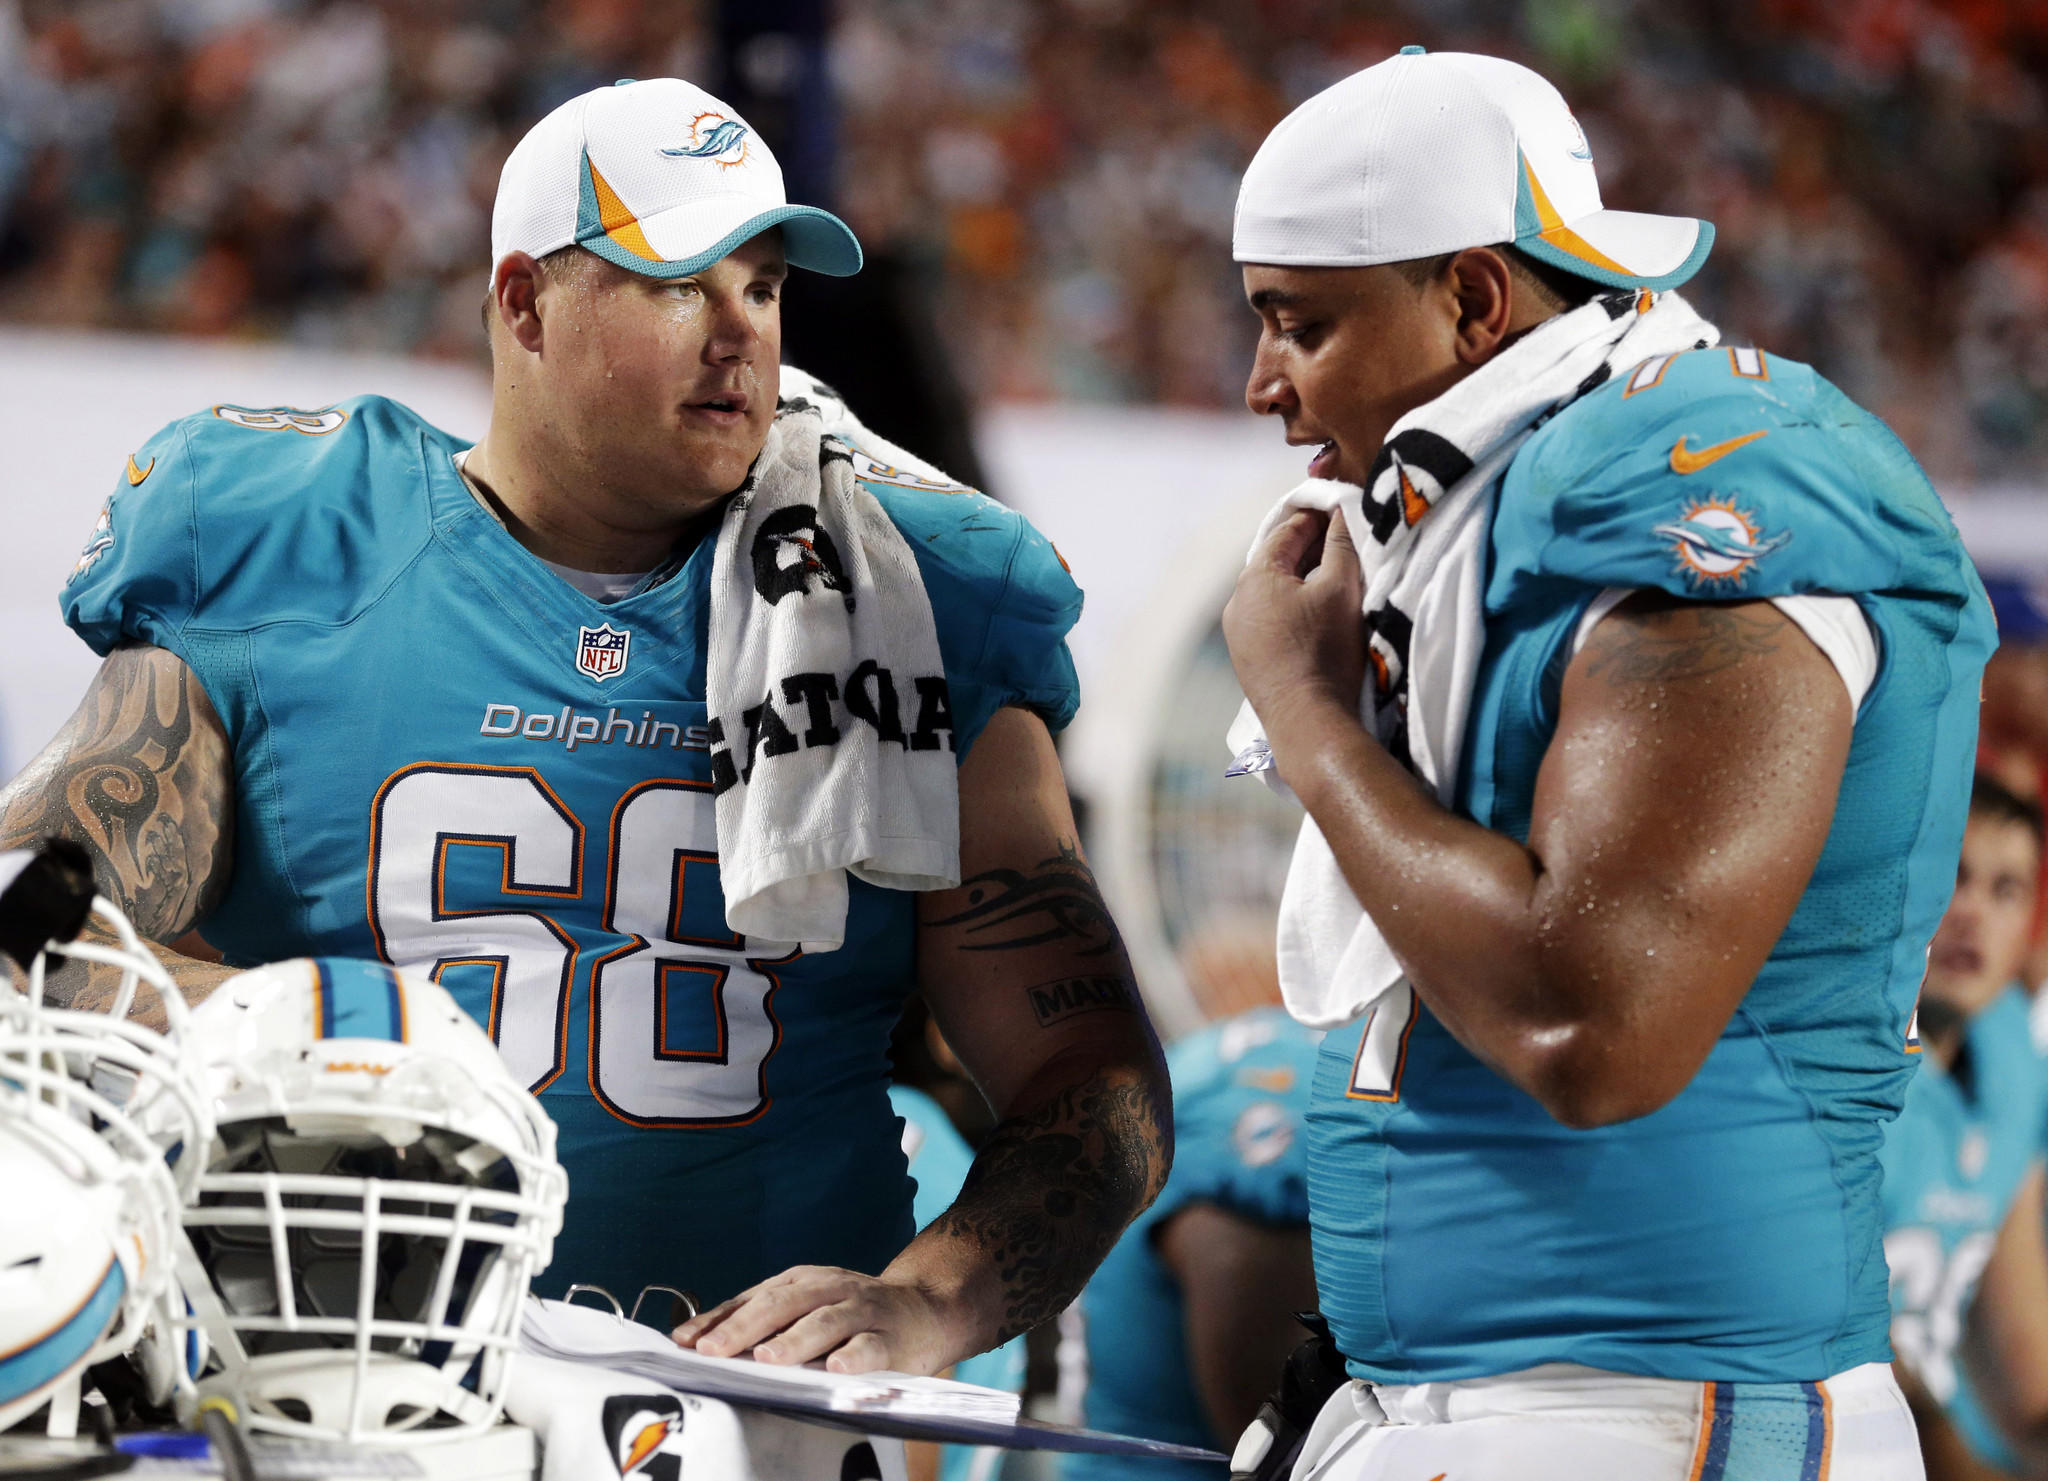 Miami Dolphins guard Richie Incognito (68) and tackle Jonathan Martin (71) look over plays during an NFL preseason football game against the Tampa Bay Buccaneers in Miami Gardens, Fla.